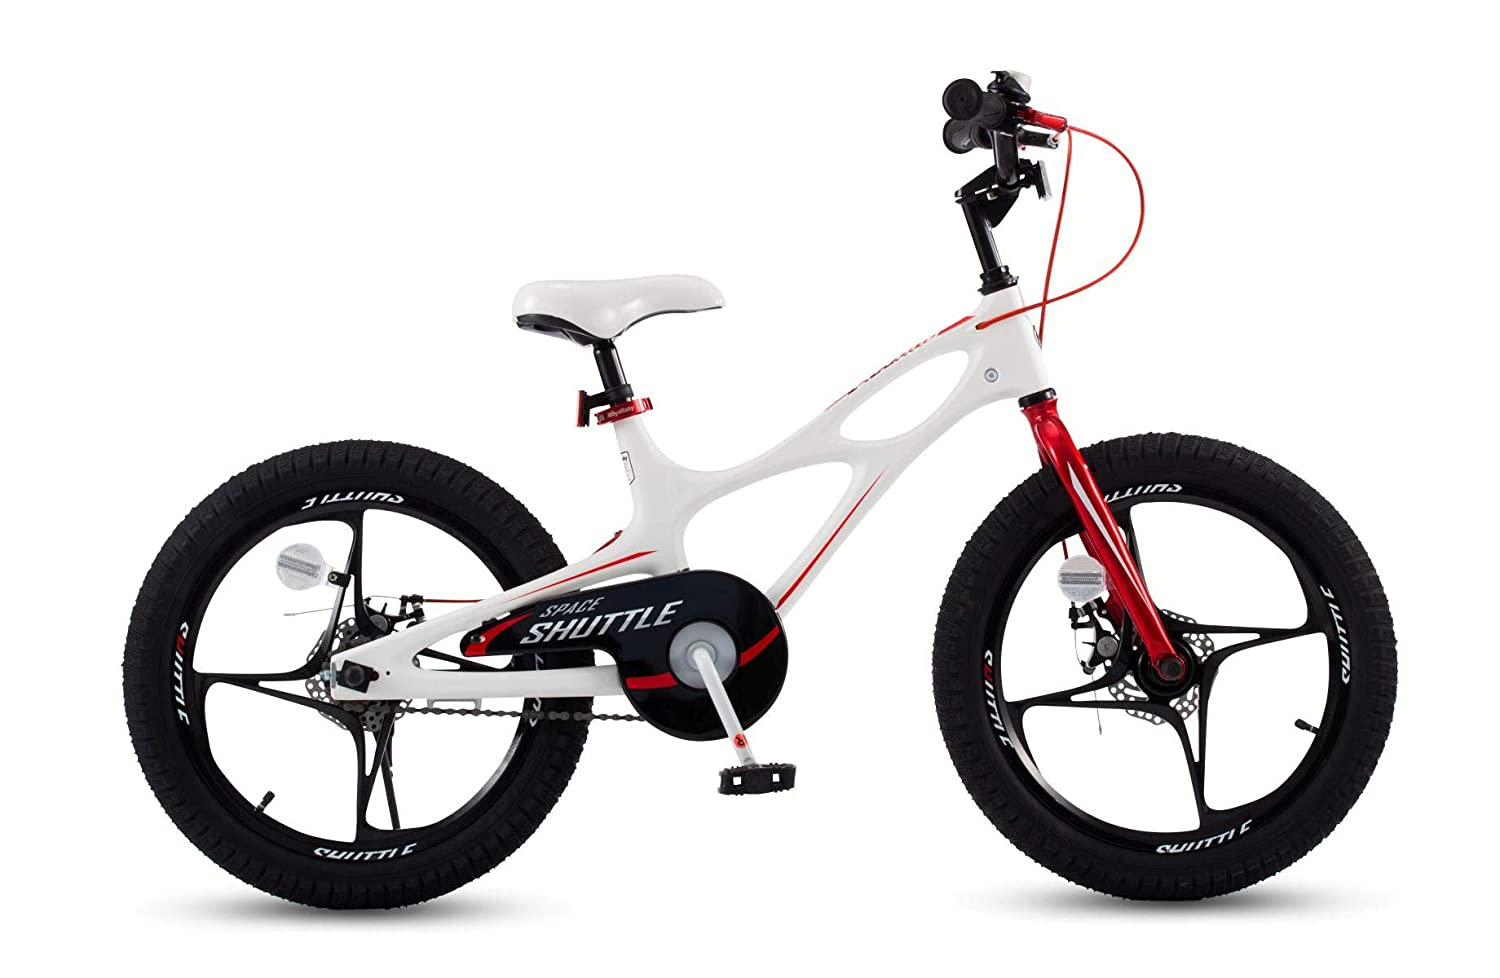 RoyalBaby Space Shuttle Lightweight Magnesium Kid s Bike with Disc Brakes for Boys and Girls, 14-16 Bike with Training Wheels, 18 inch Bike with Kickstand, 3 Colors Available